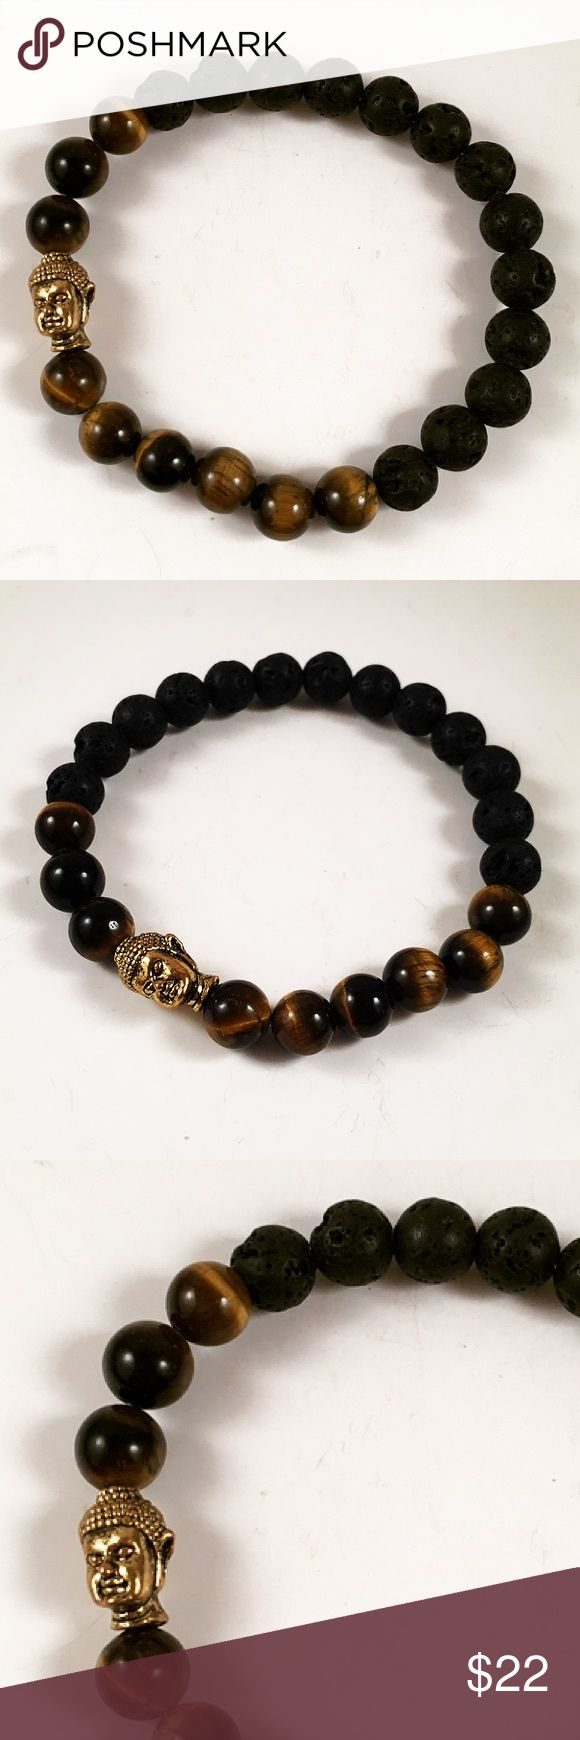 Beaded Men lava rock and tiger eye buddha bracelet Men beaded bracelet. Fits most , 7.5 to 8.5 inch wrist. Handmade by me . Never worn by anyone. Made with golden tiger eye and Lava rock. Gold color Buddha charm . I ship fast!!✈️ Free gift with every purchase!! Accessories Jewelry